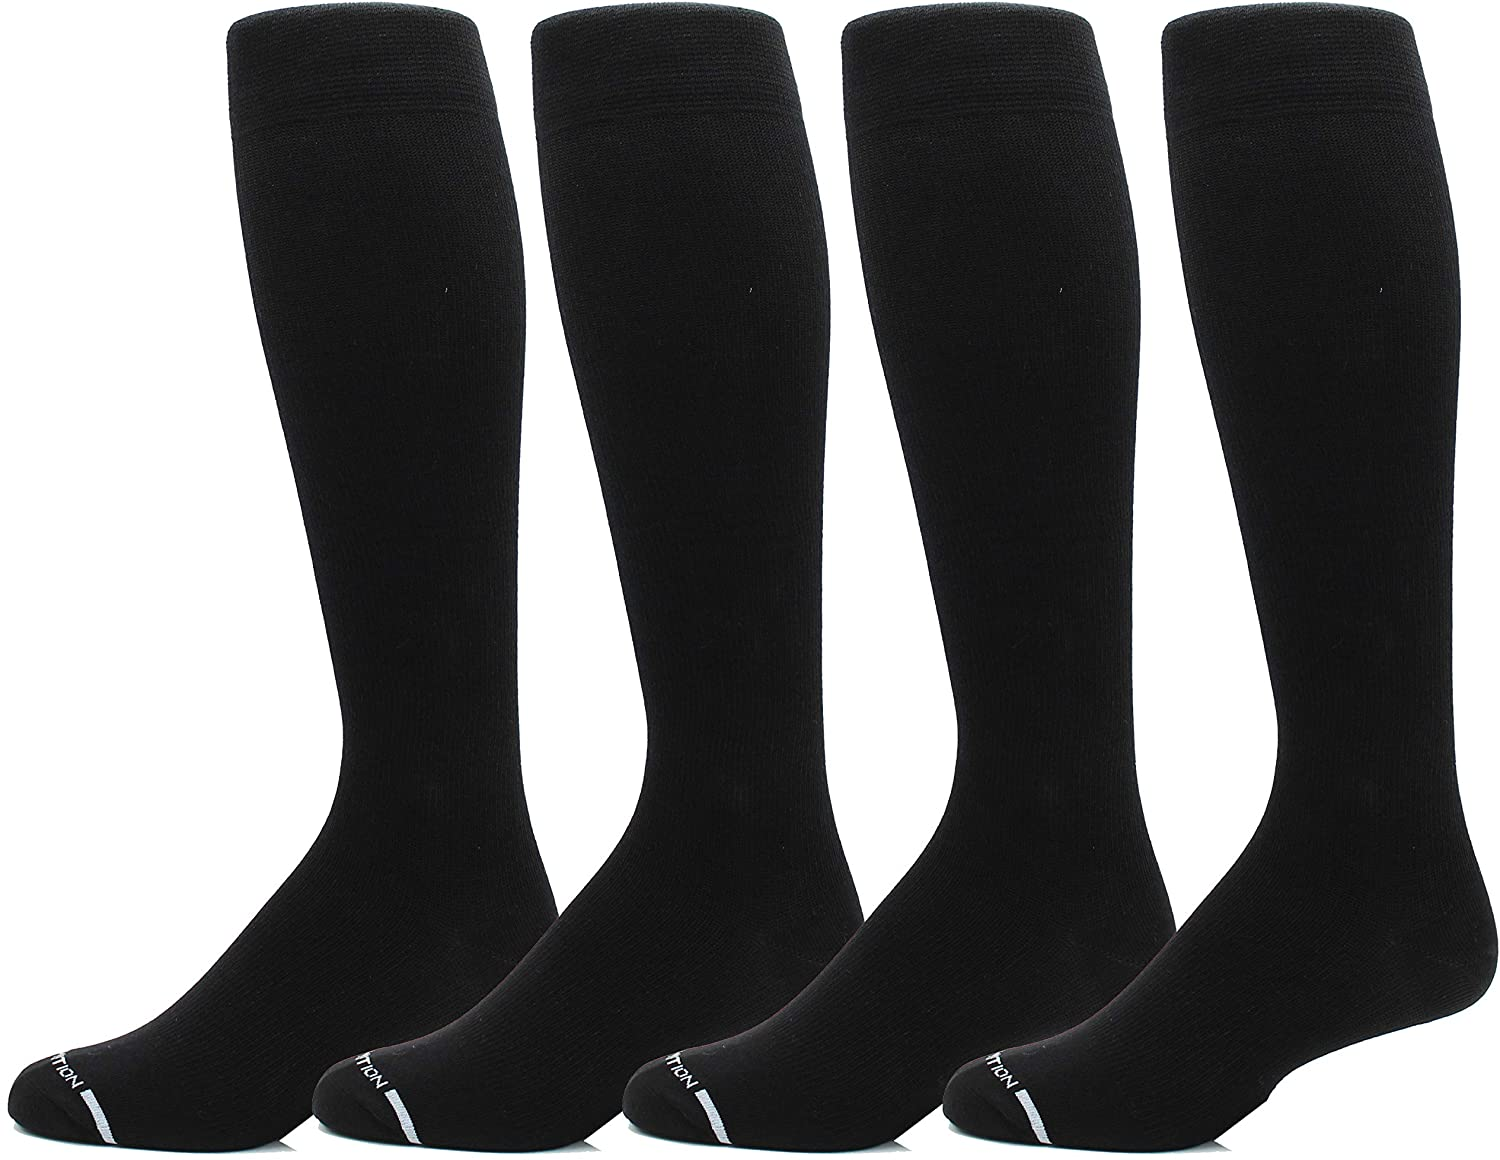 4 Pairs Men's Dr. Motion 8-15 Mmhg Graduated Support Compression Knee High Socks …